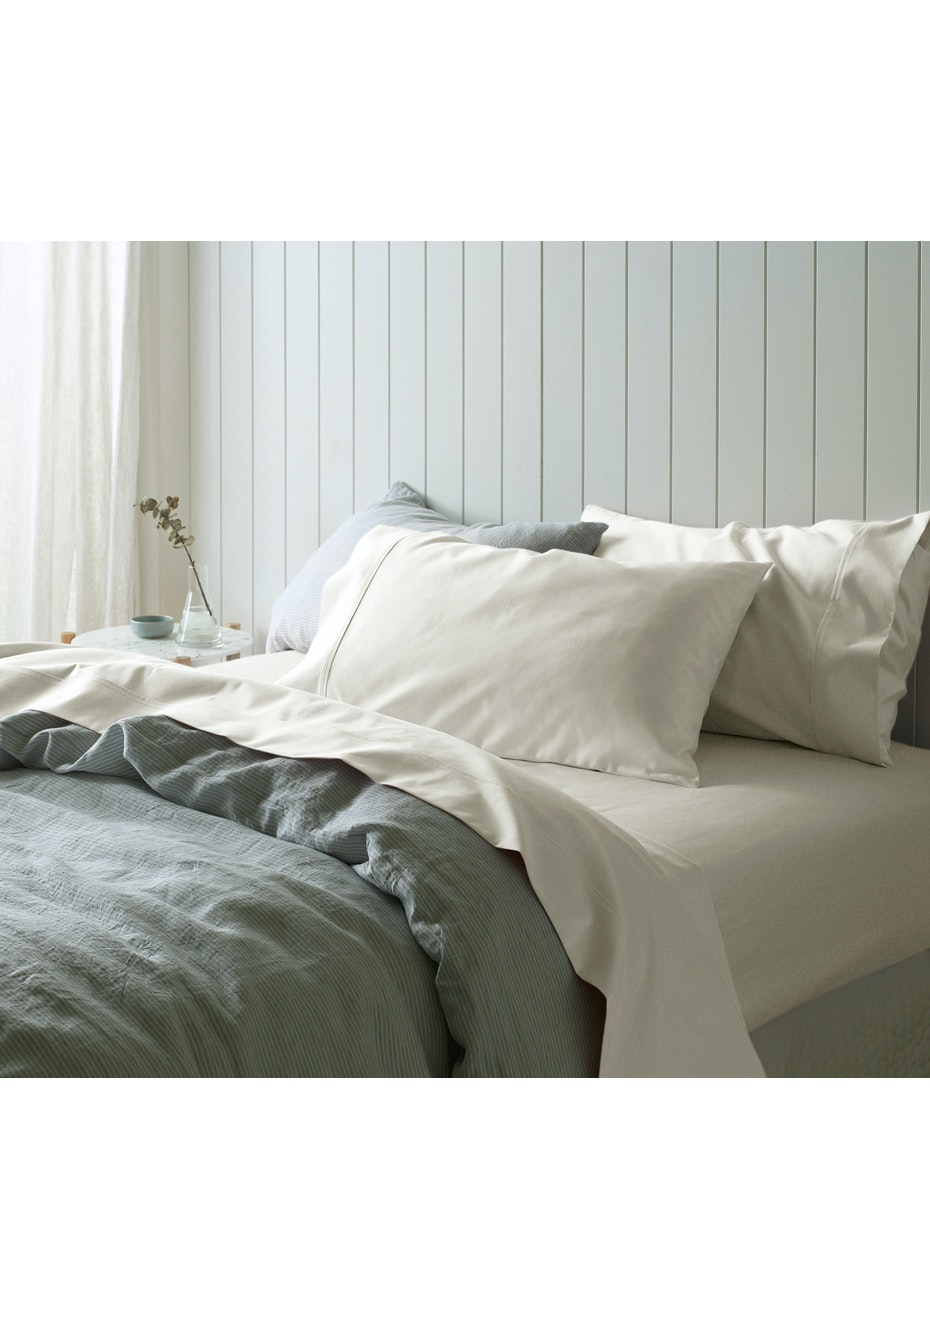 Accessorize   Accessorize Cream 1000TC Cotton Sateen Sheet Sets   King Bed    Cream   Affordable Bedroom Makeover   Onceit